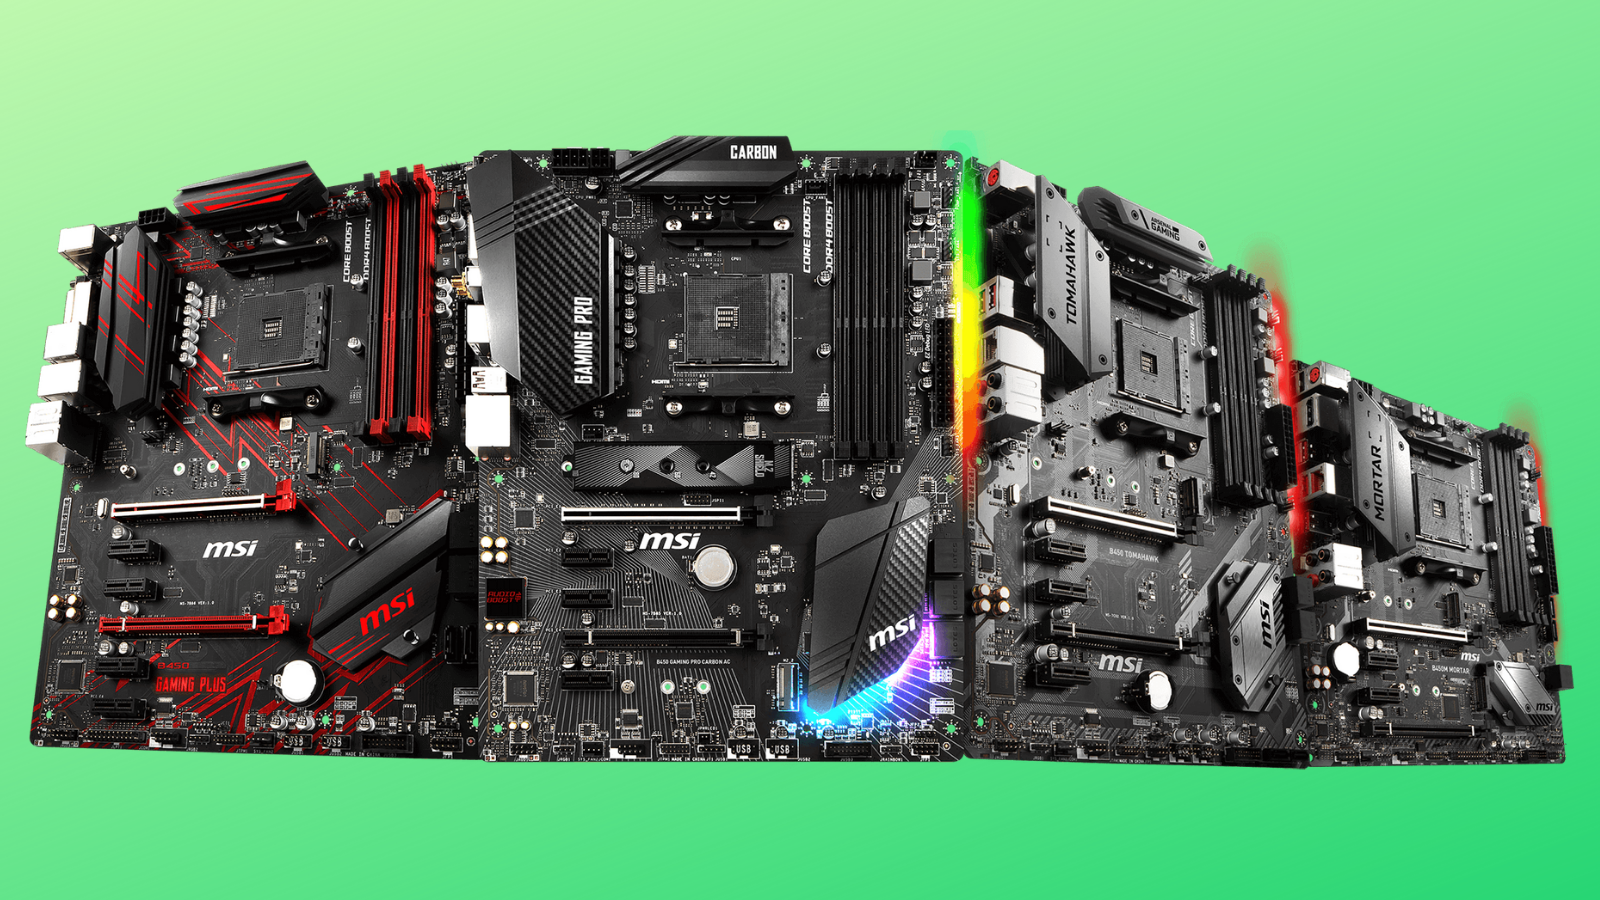 The Best B450 Motherboards 2019 For Gaming and Productivity